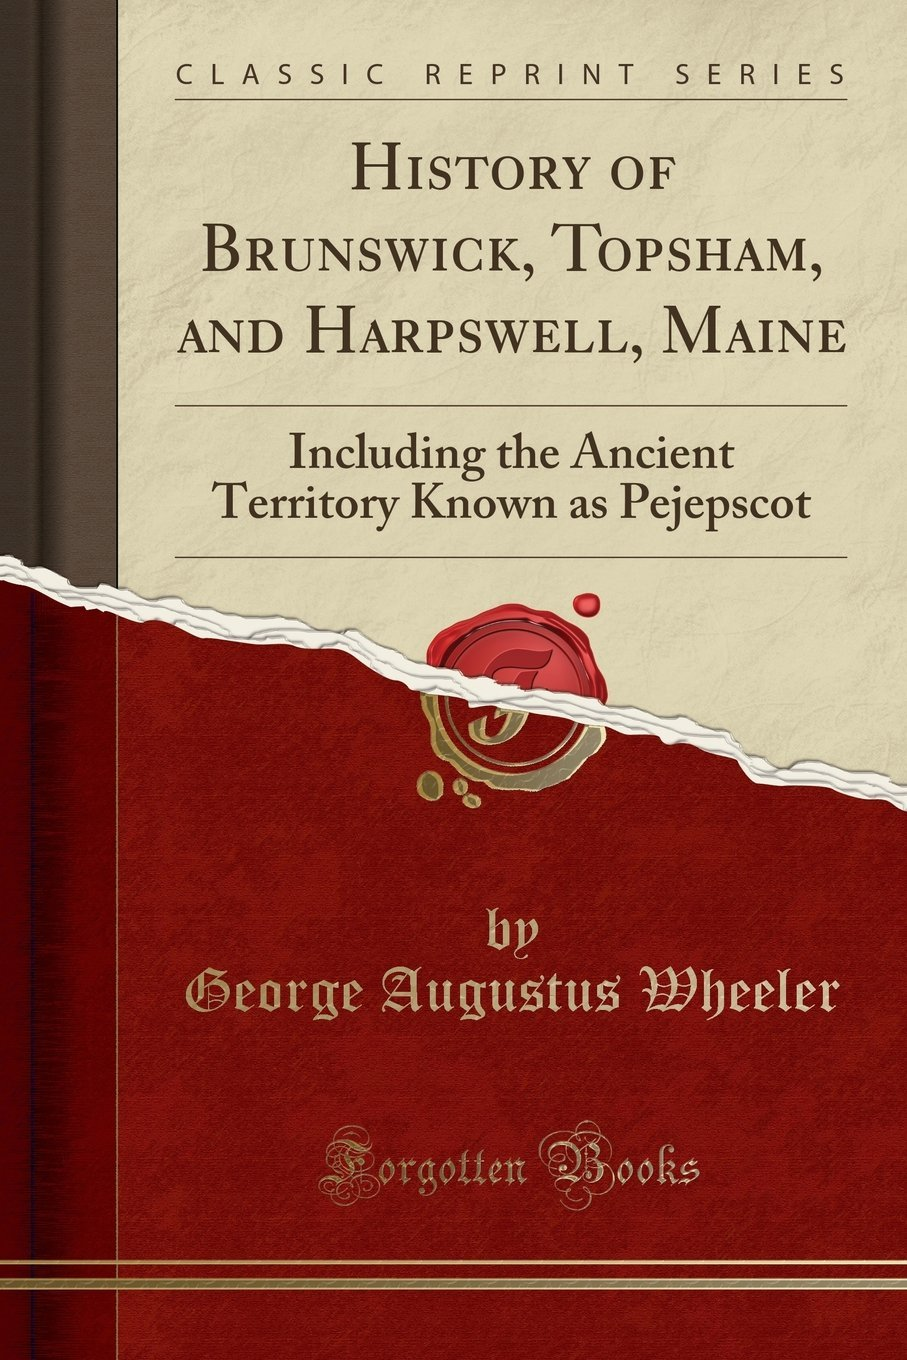 Download History of Brunswick, Topsham, and Harpswell, Maine: Including the Ancient Territory Known as Pejepscot (Classic Reprint) pdf epub